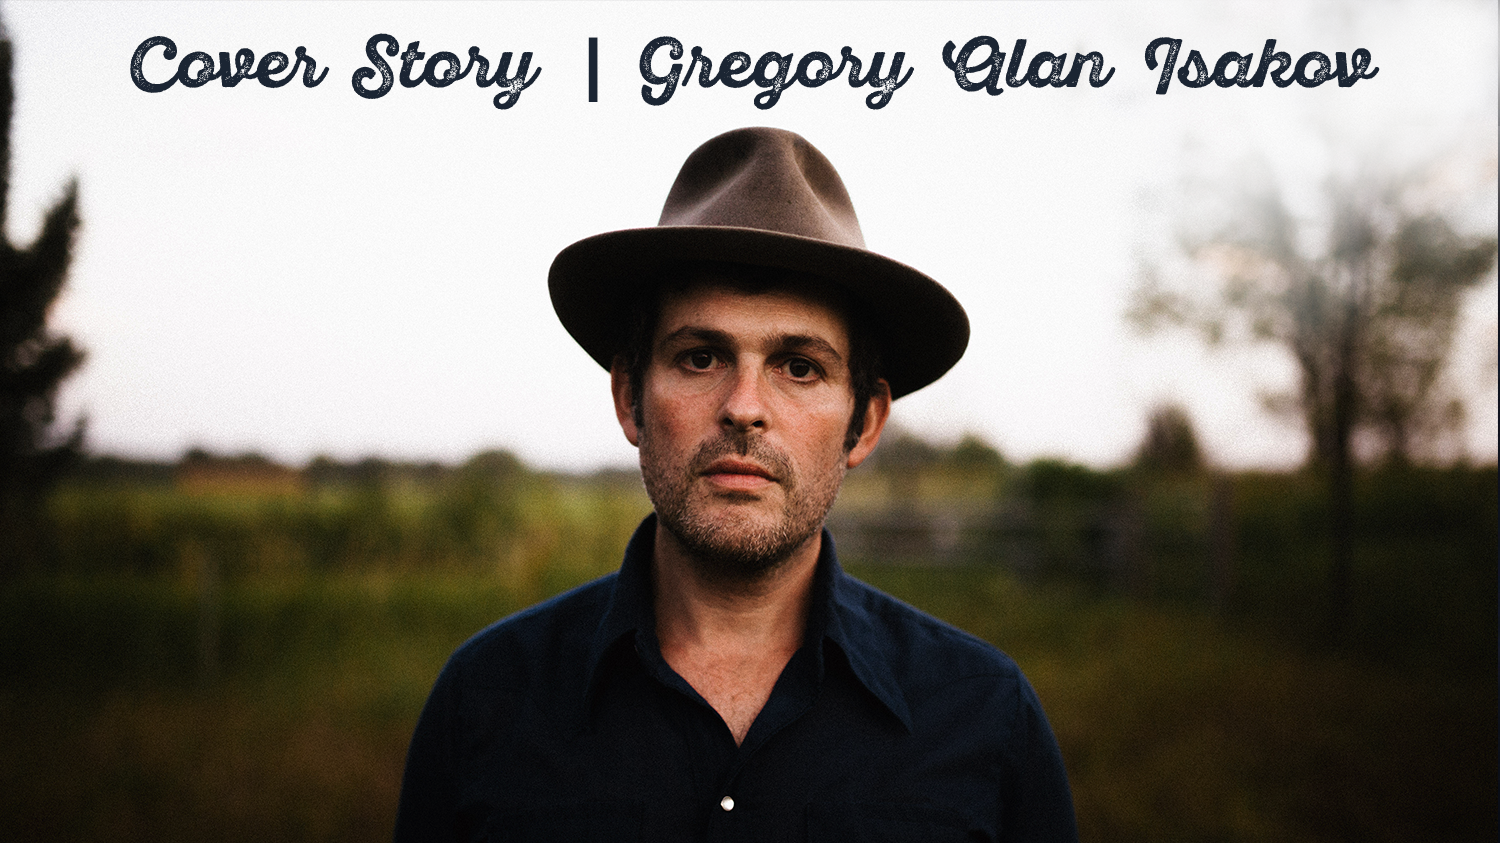 An Otherworldly Landscape: A Conversation with Gregory Alan Isakov